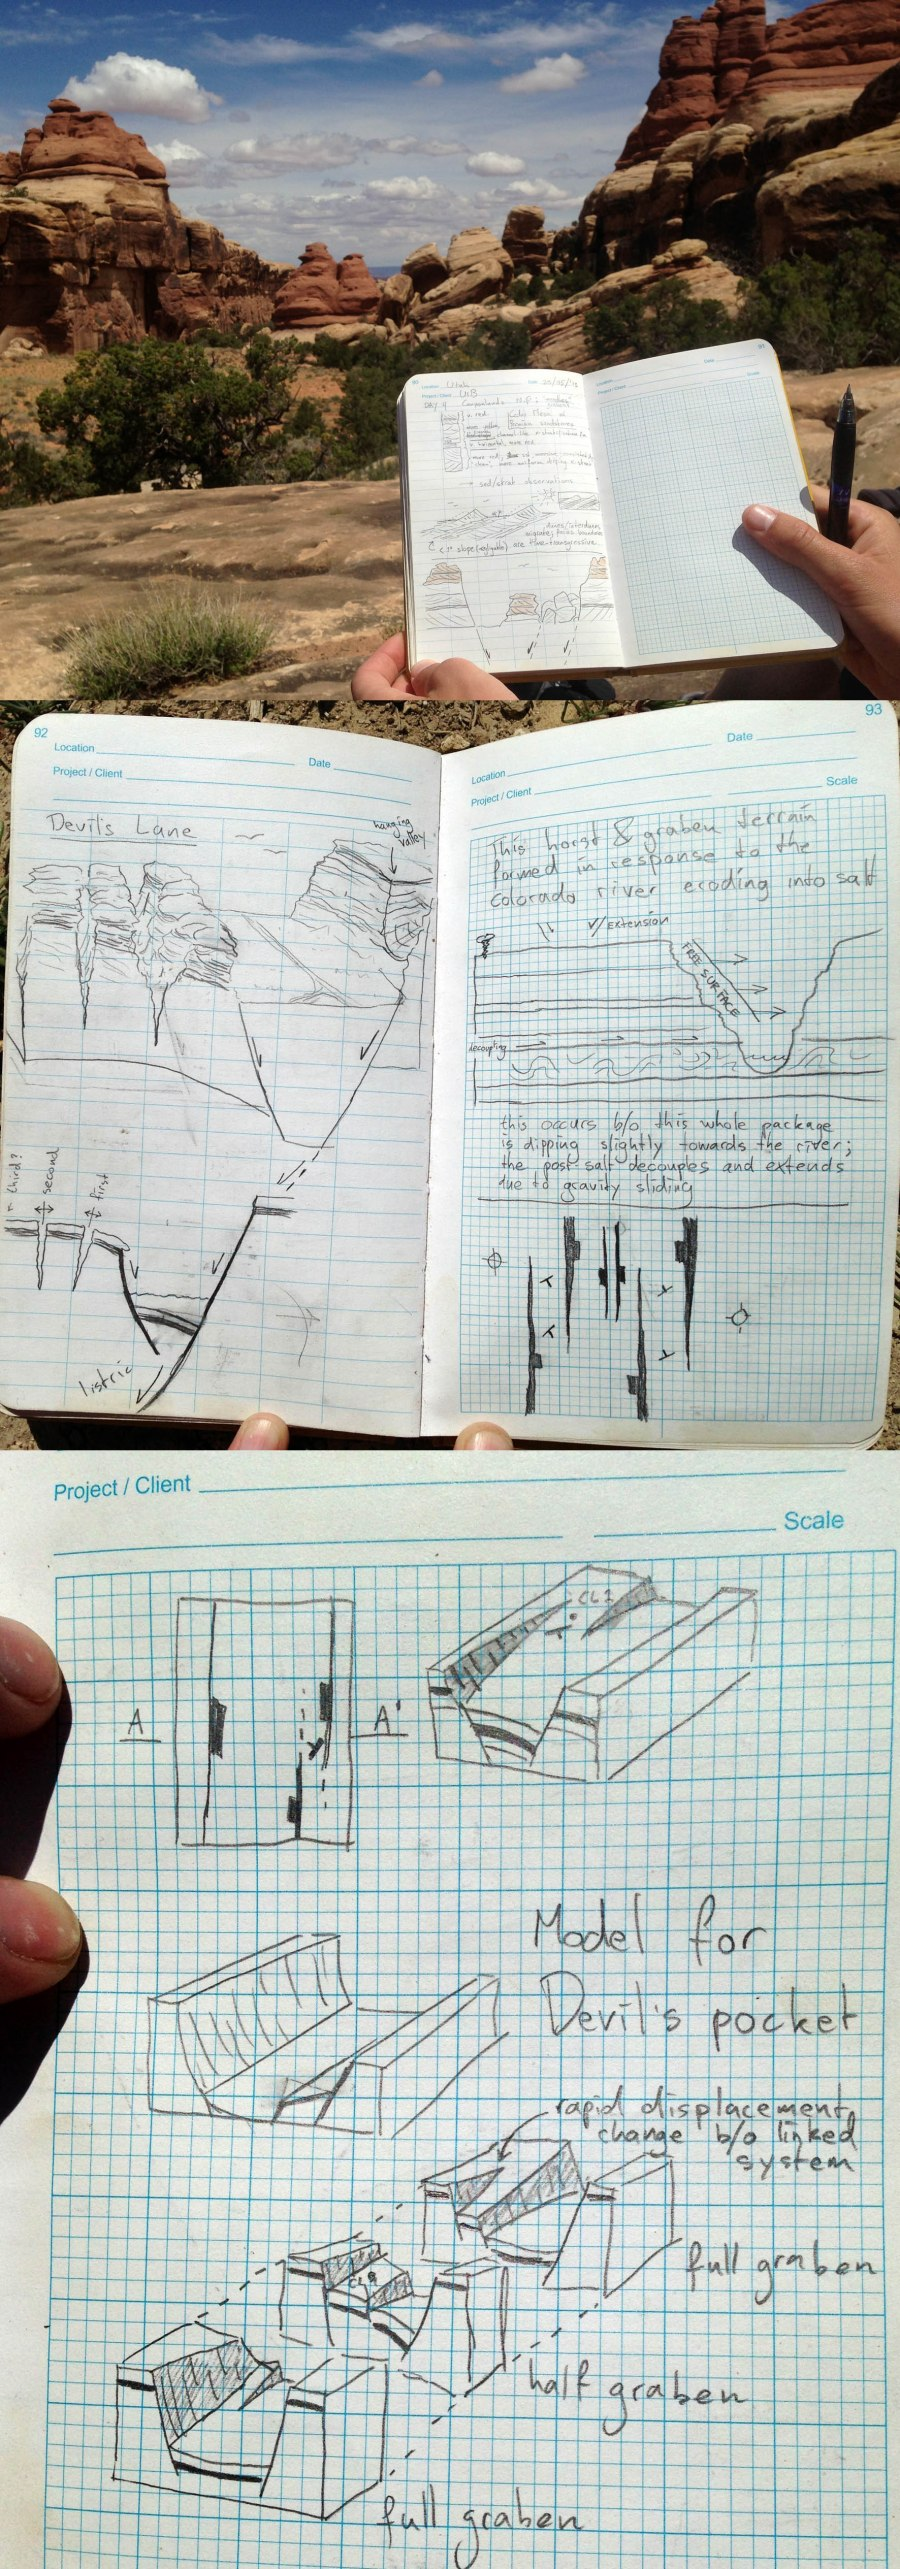 Figure 3: Examples of field sketches made by students attending the University of Bergen 2013 field course to Utah. These sketches are from Devil's Lane in the Grabens area of Canyonlands National Park. Note the combined use of maps, cross-sections and 3D perspective.